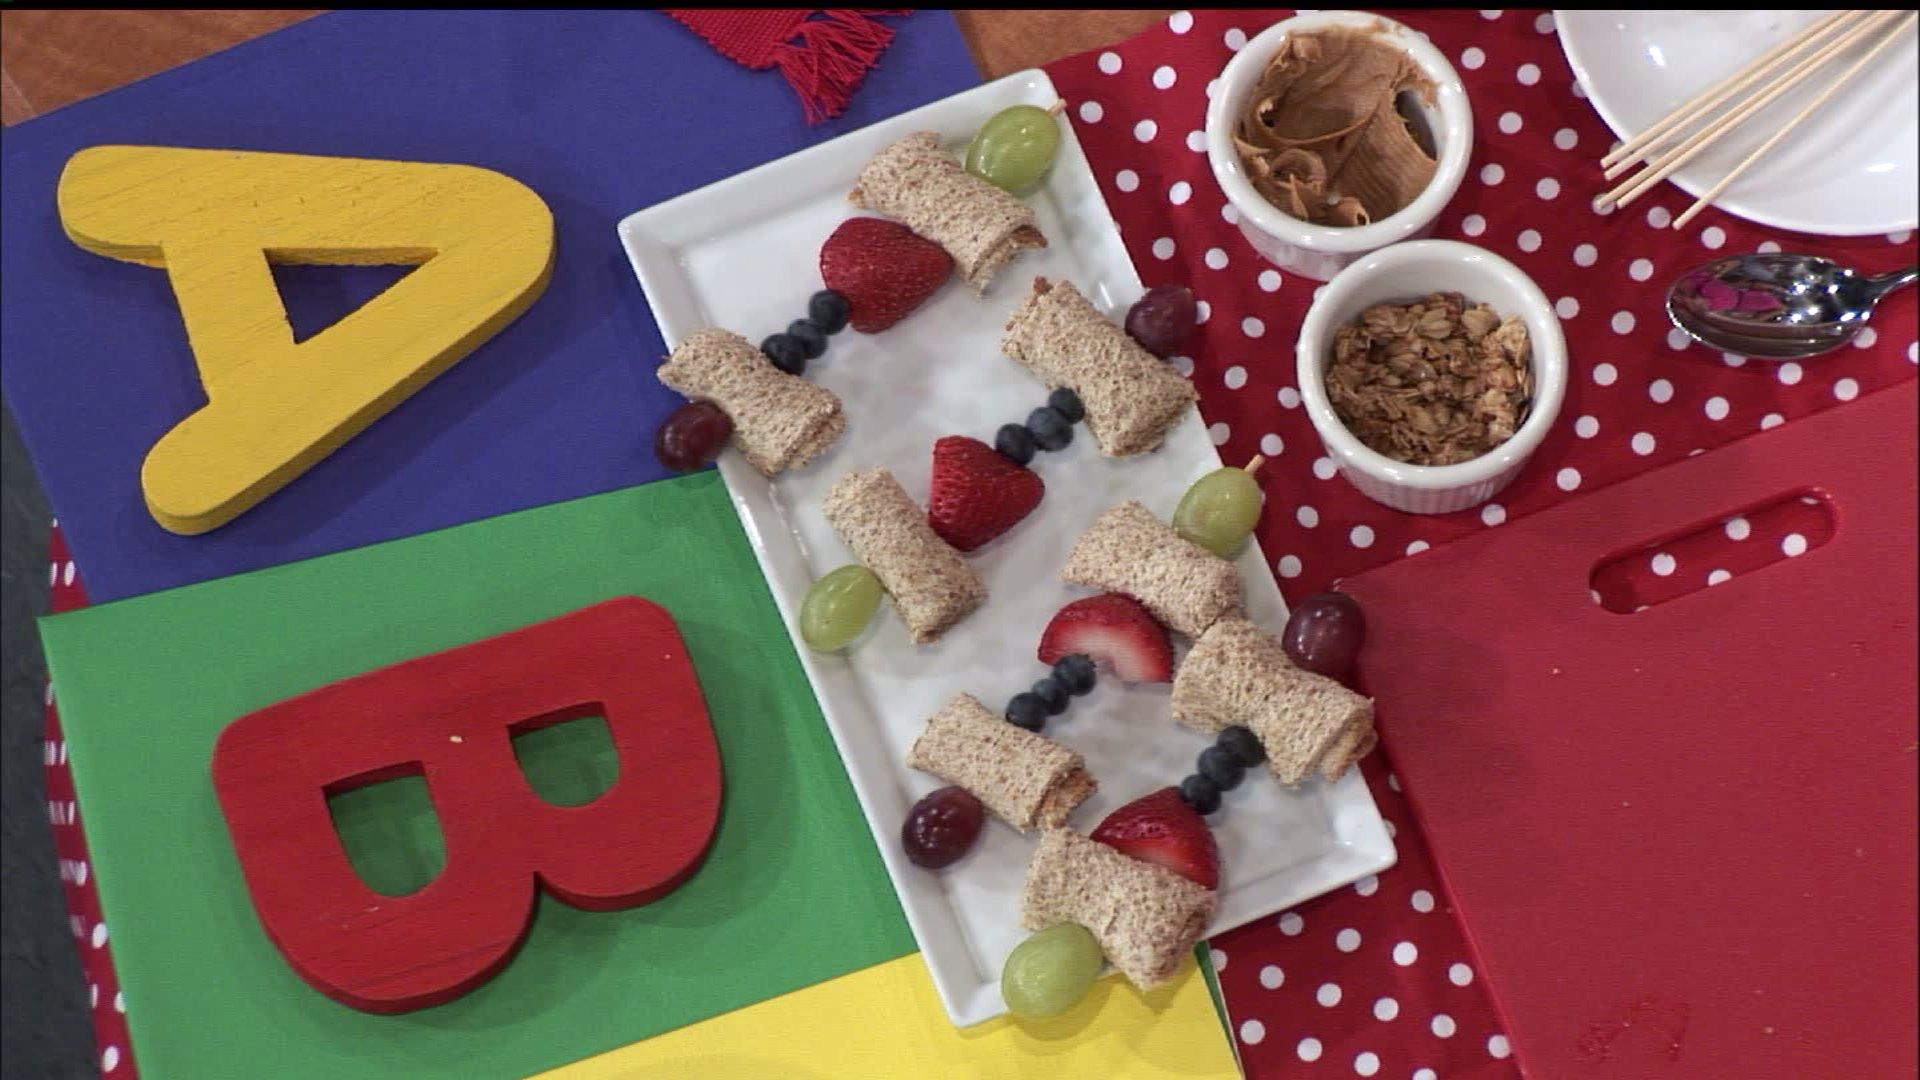 4 Ways to Make School Sack Lunches More Fun